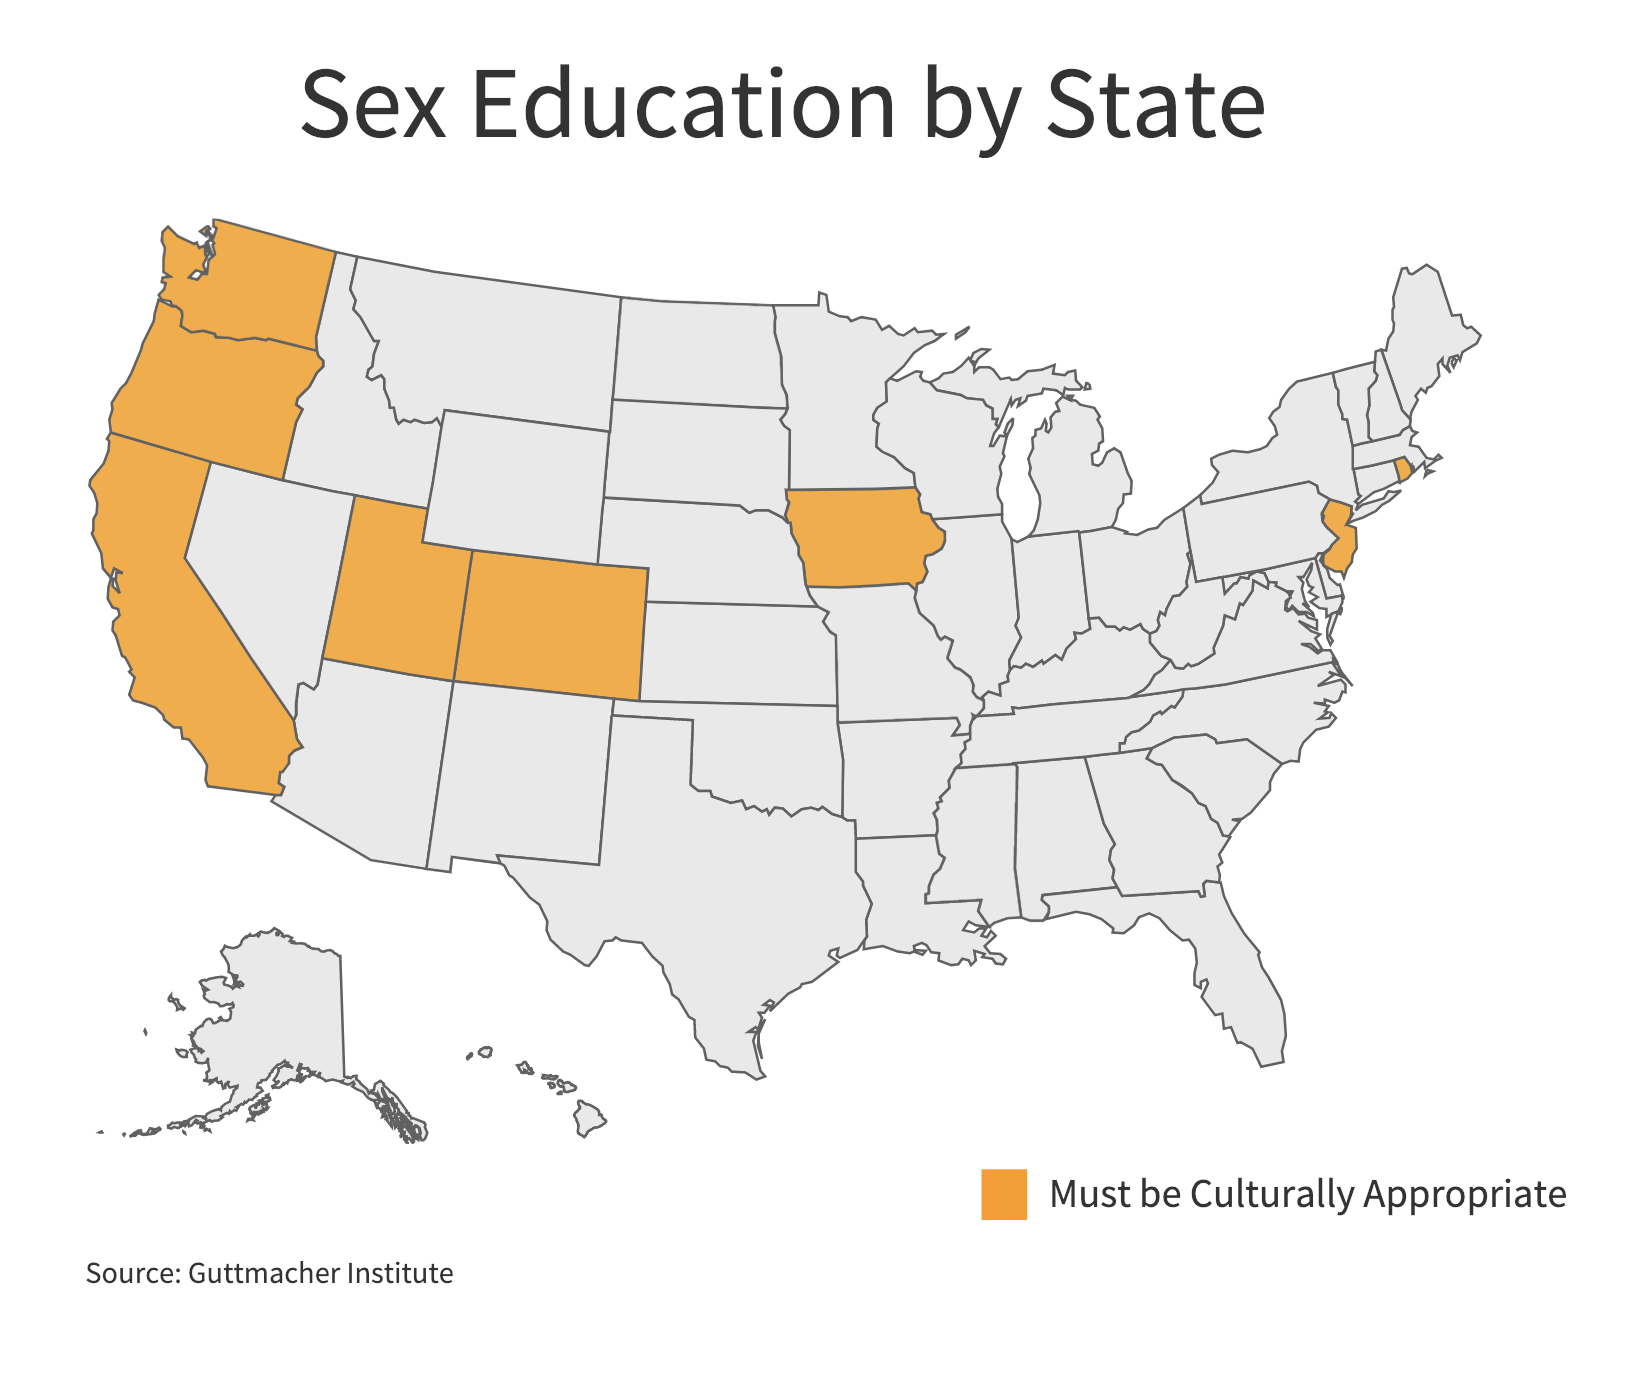 Eight states require that when sexual education is provided it be culturally appropriate and unbiased. (Charts by Ester Wells/MNS)